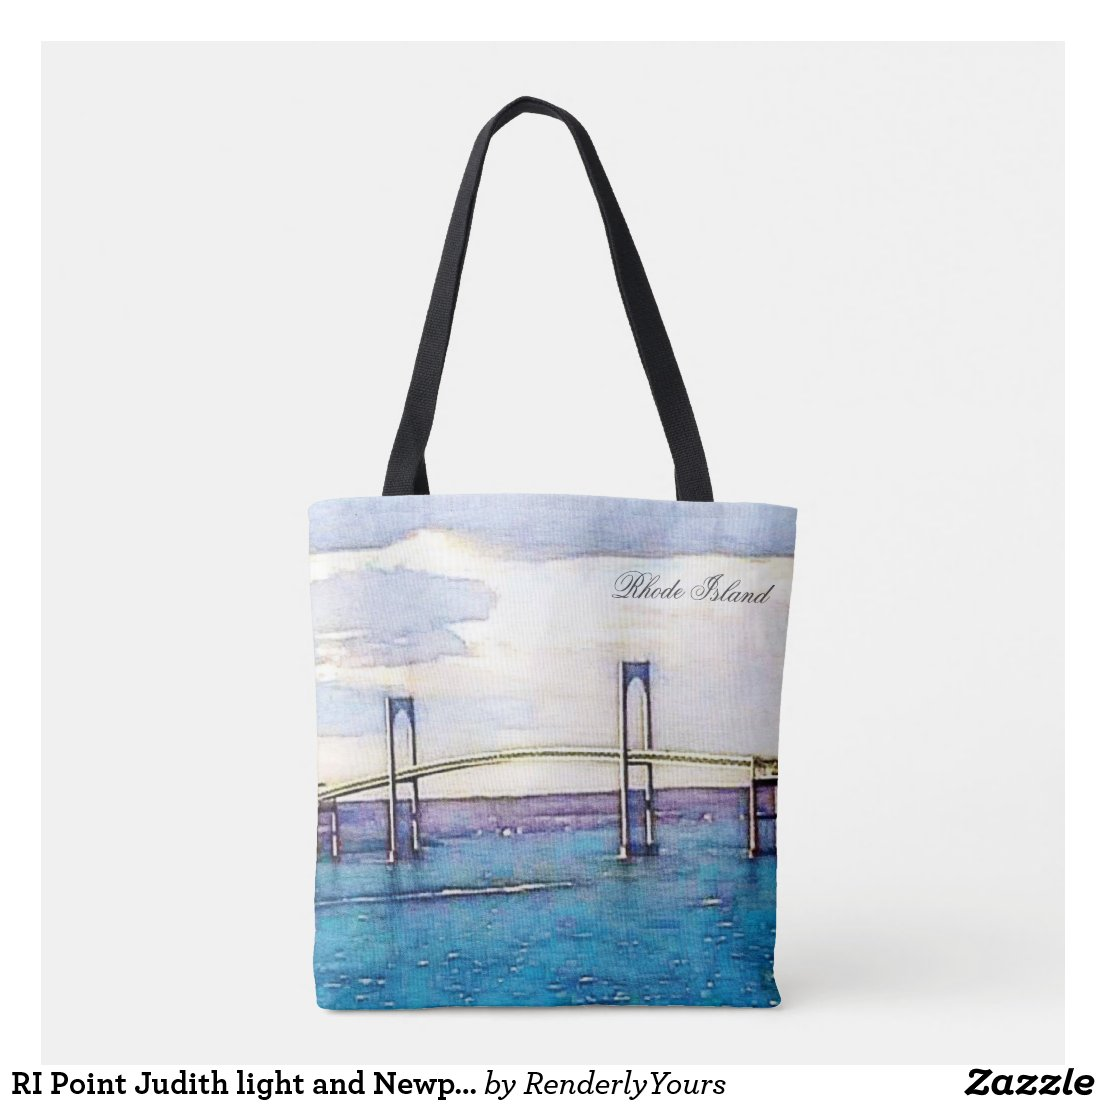 RI Point Judith light and Newport Bridge tote